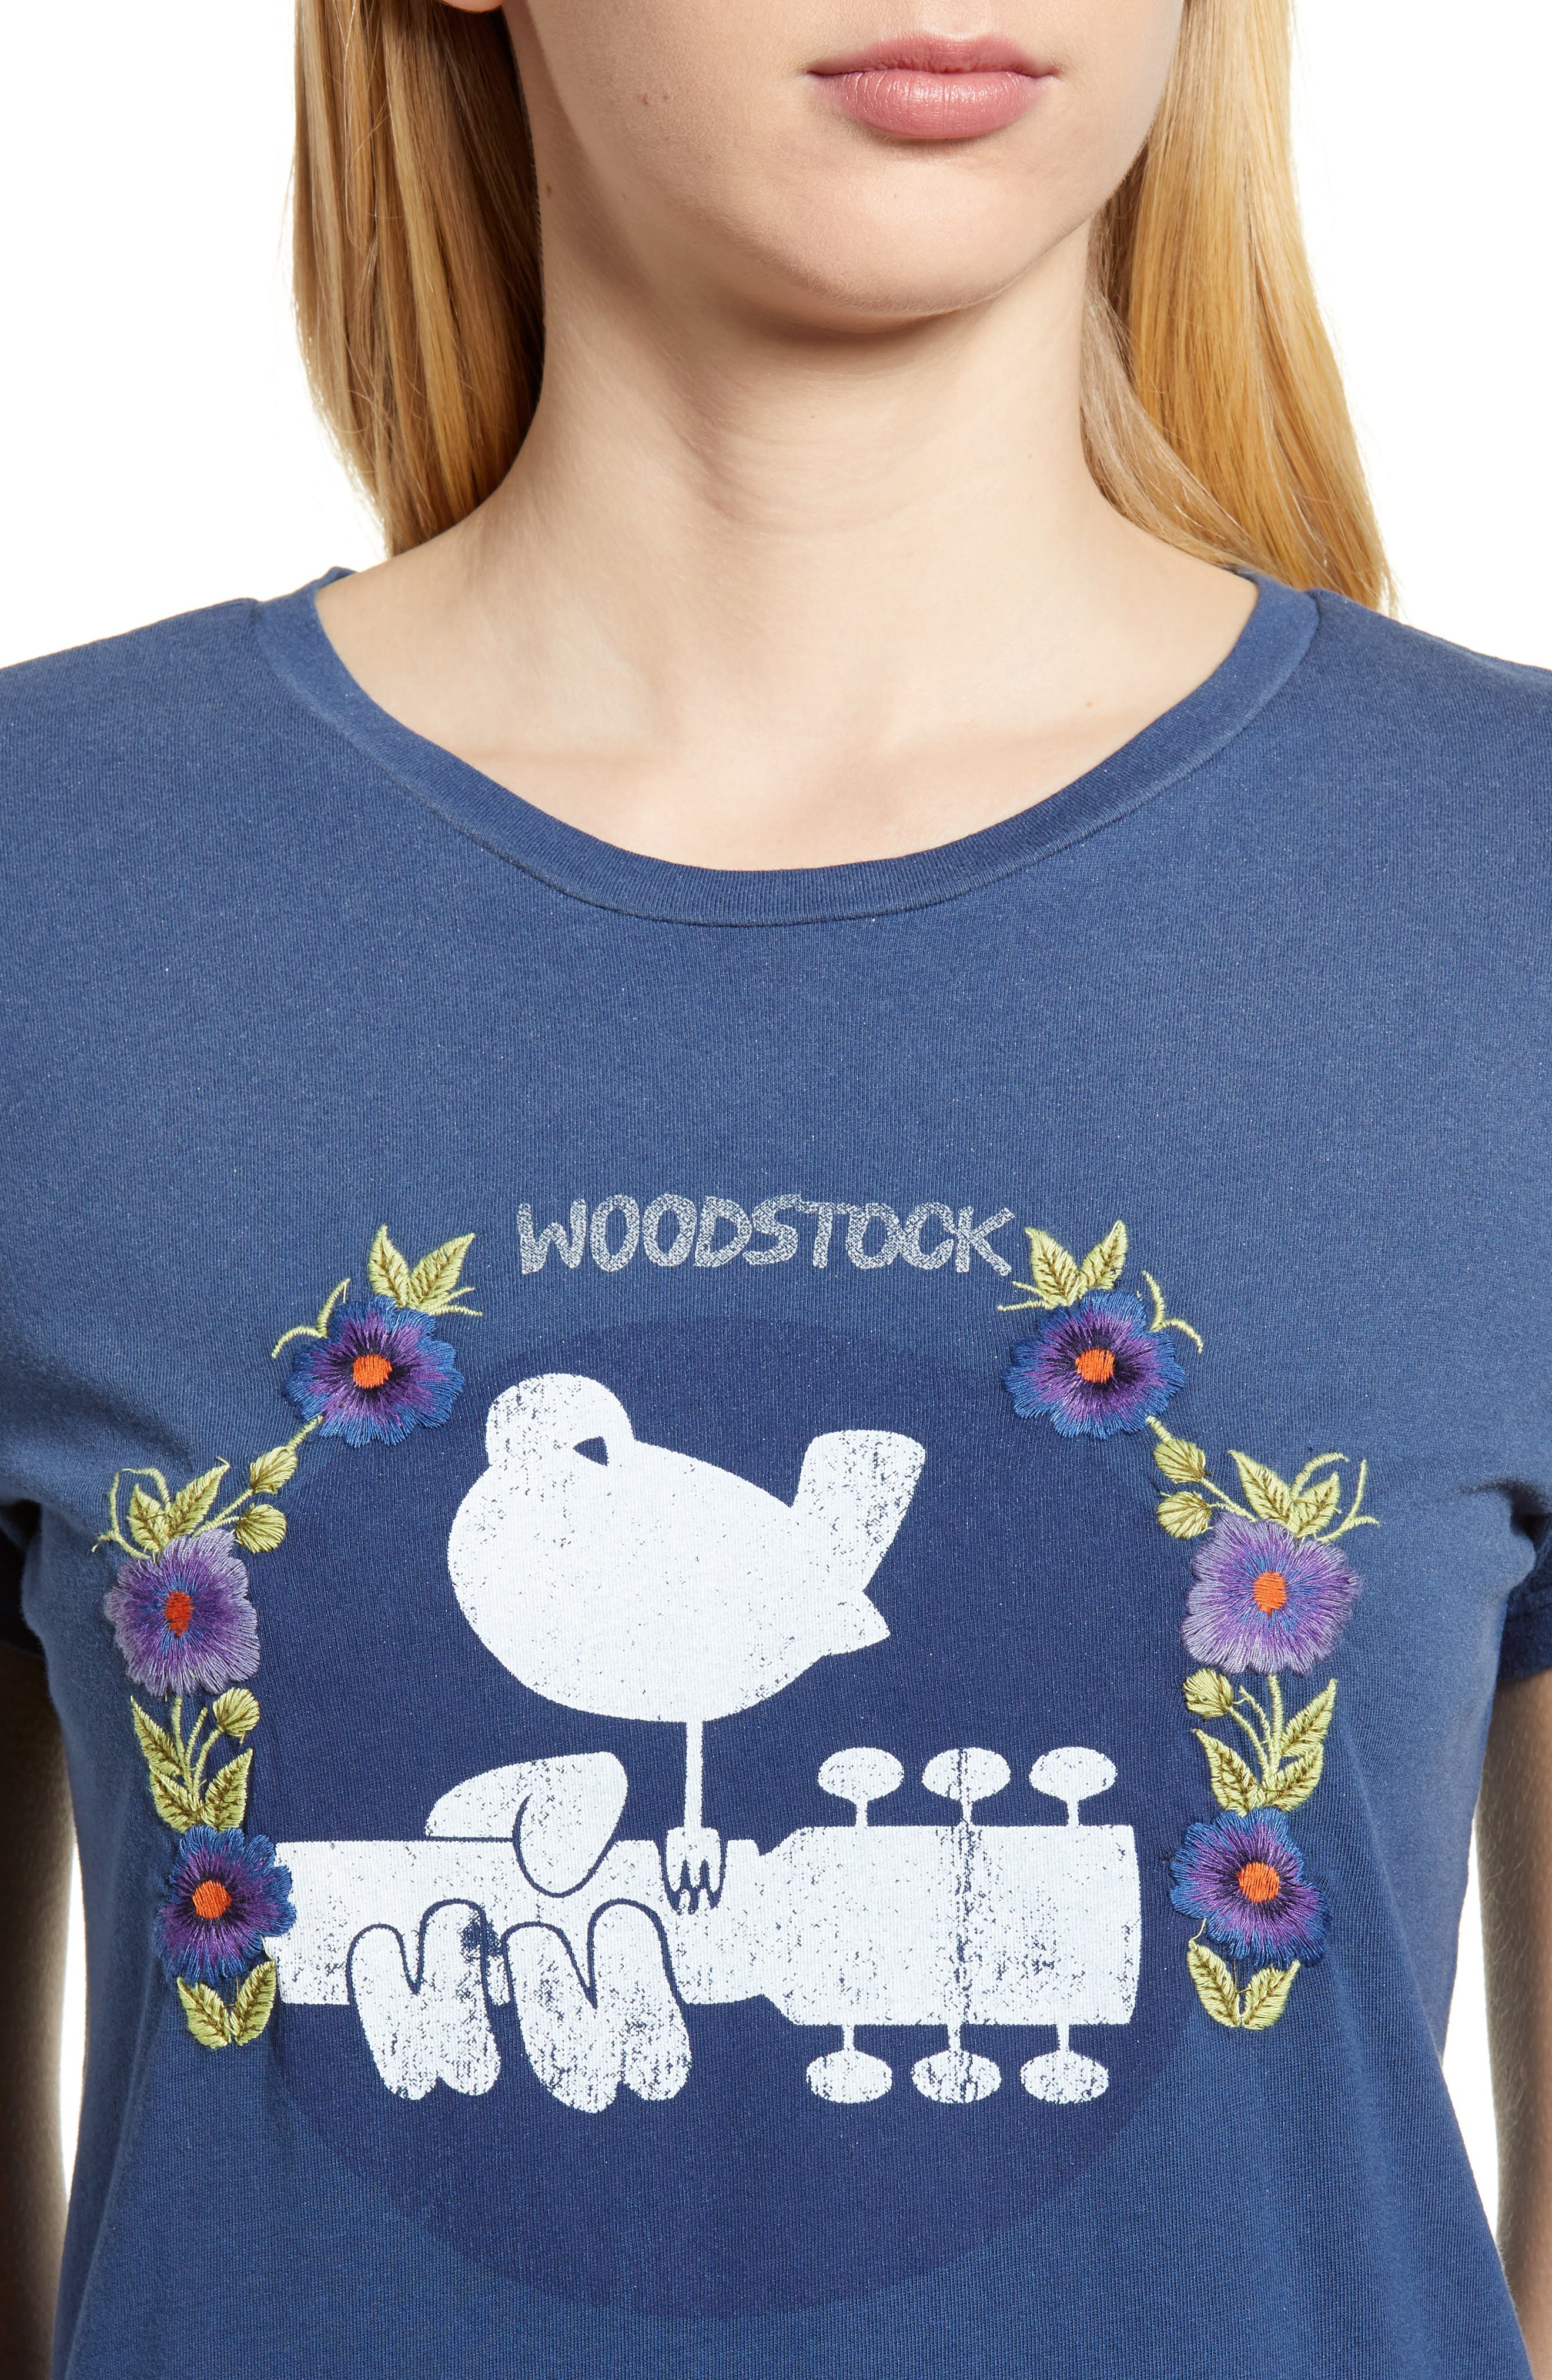 Embroidered Woodstock Tee,                             Alternate thumbnail 4, color,                             400